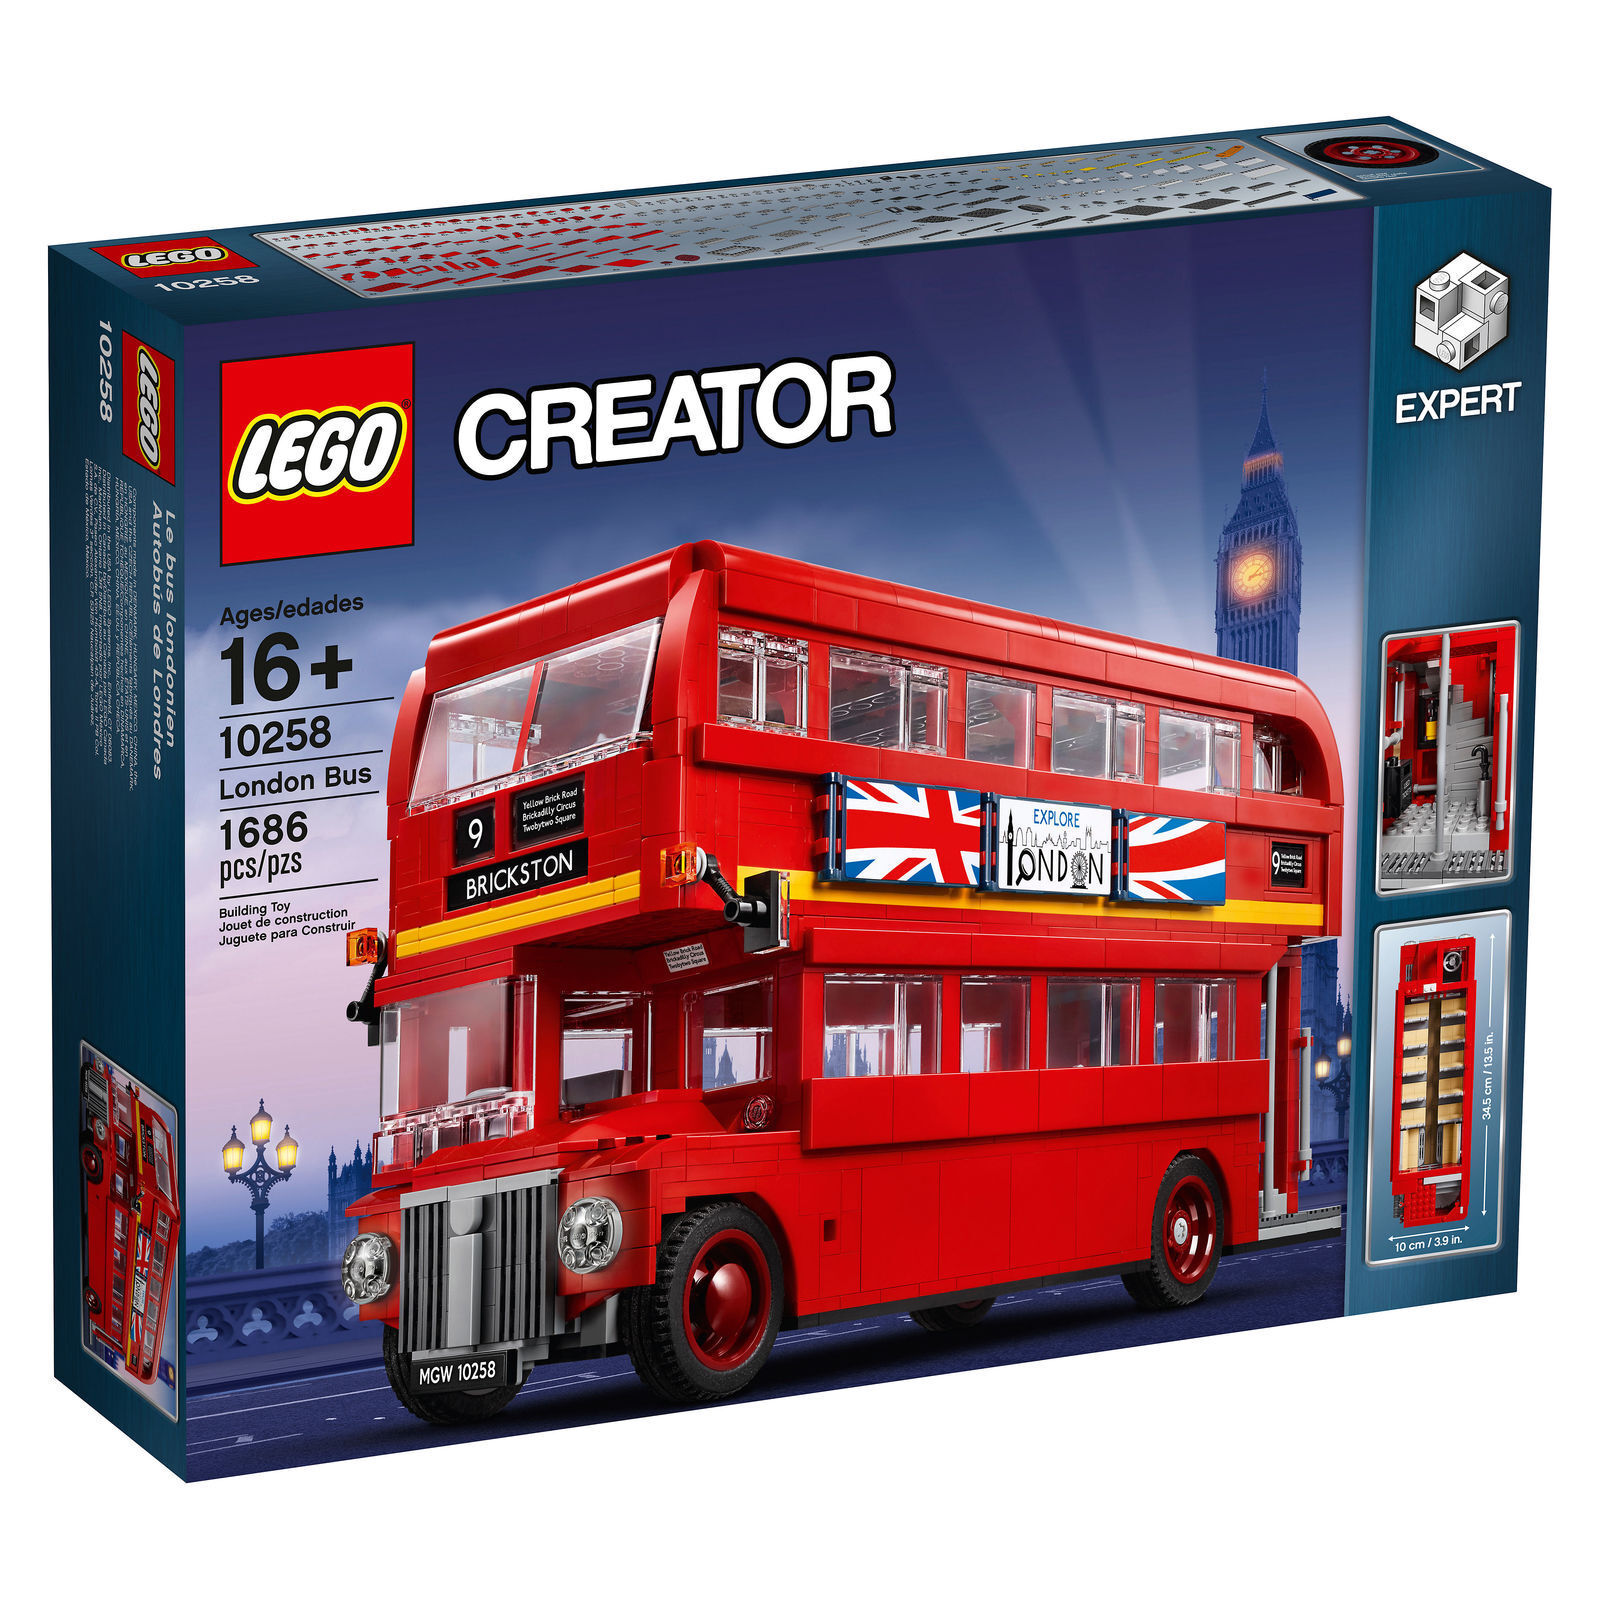 NEW LEGO CREATOR  LONDON BUS SET 10258  1500+ PIECES